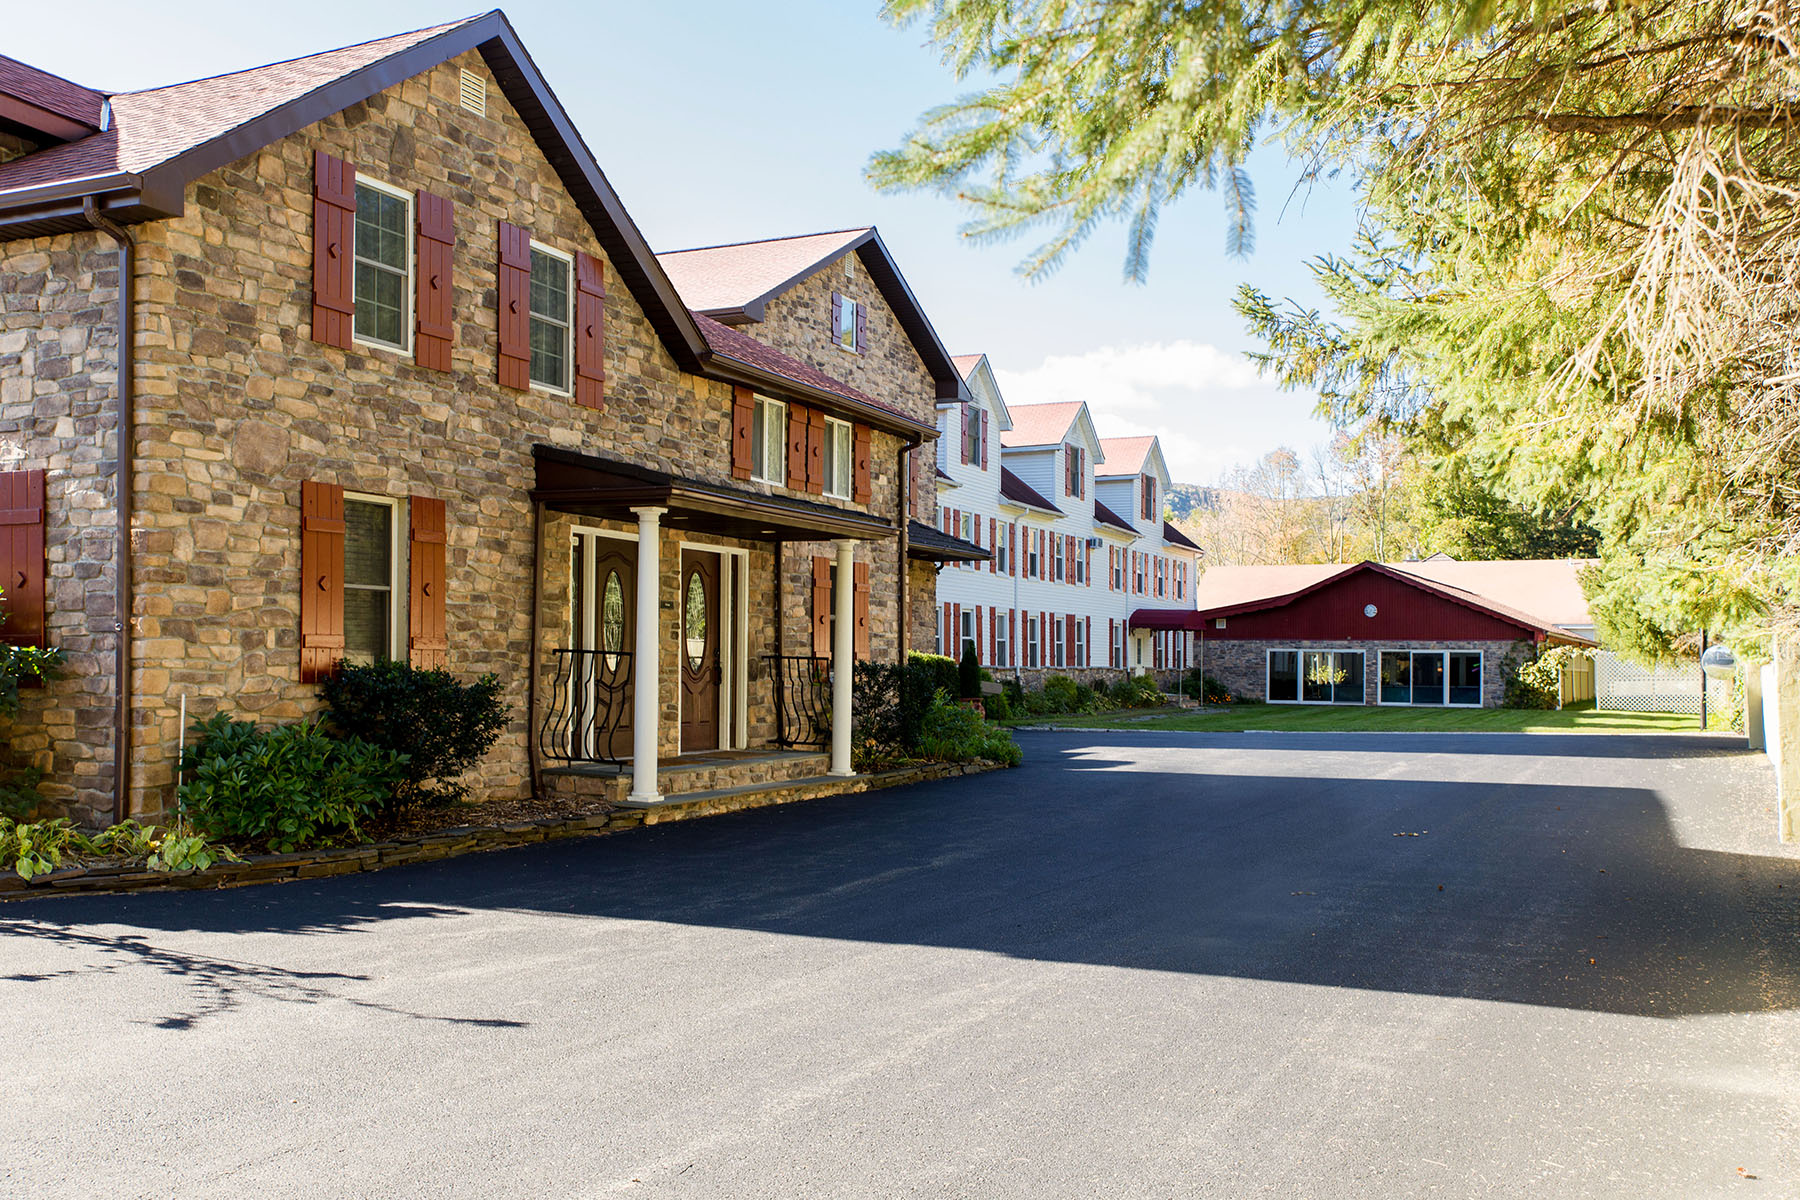 Additional photo for property listing at Copperhood Resort & Spa 7039  State Route 28 Shandaken, Nueva York 12480 Estados Unidos